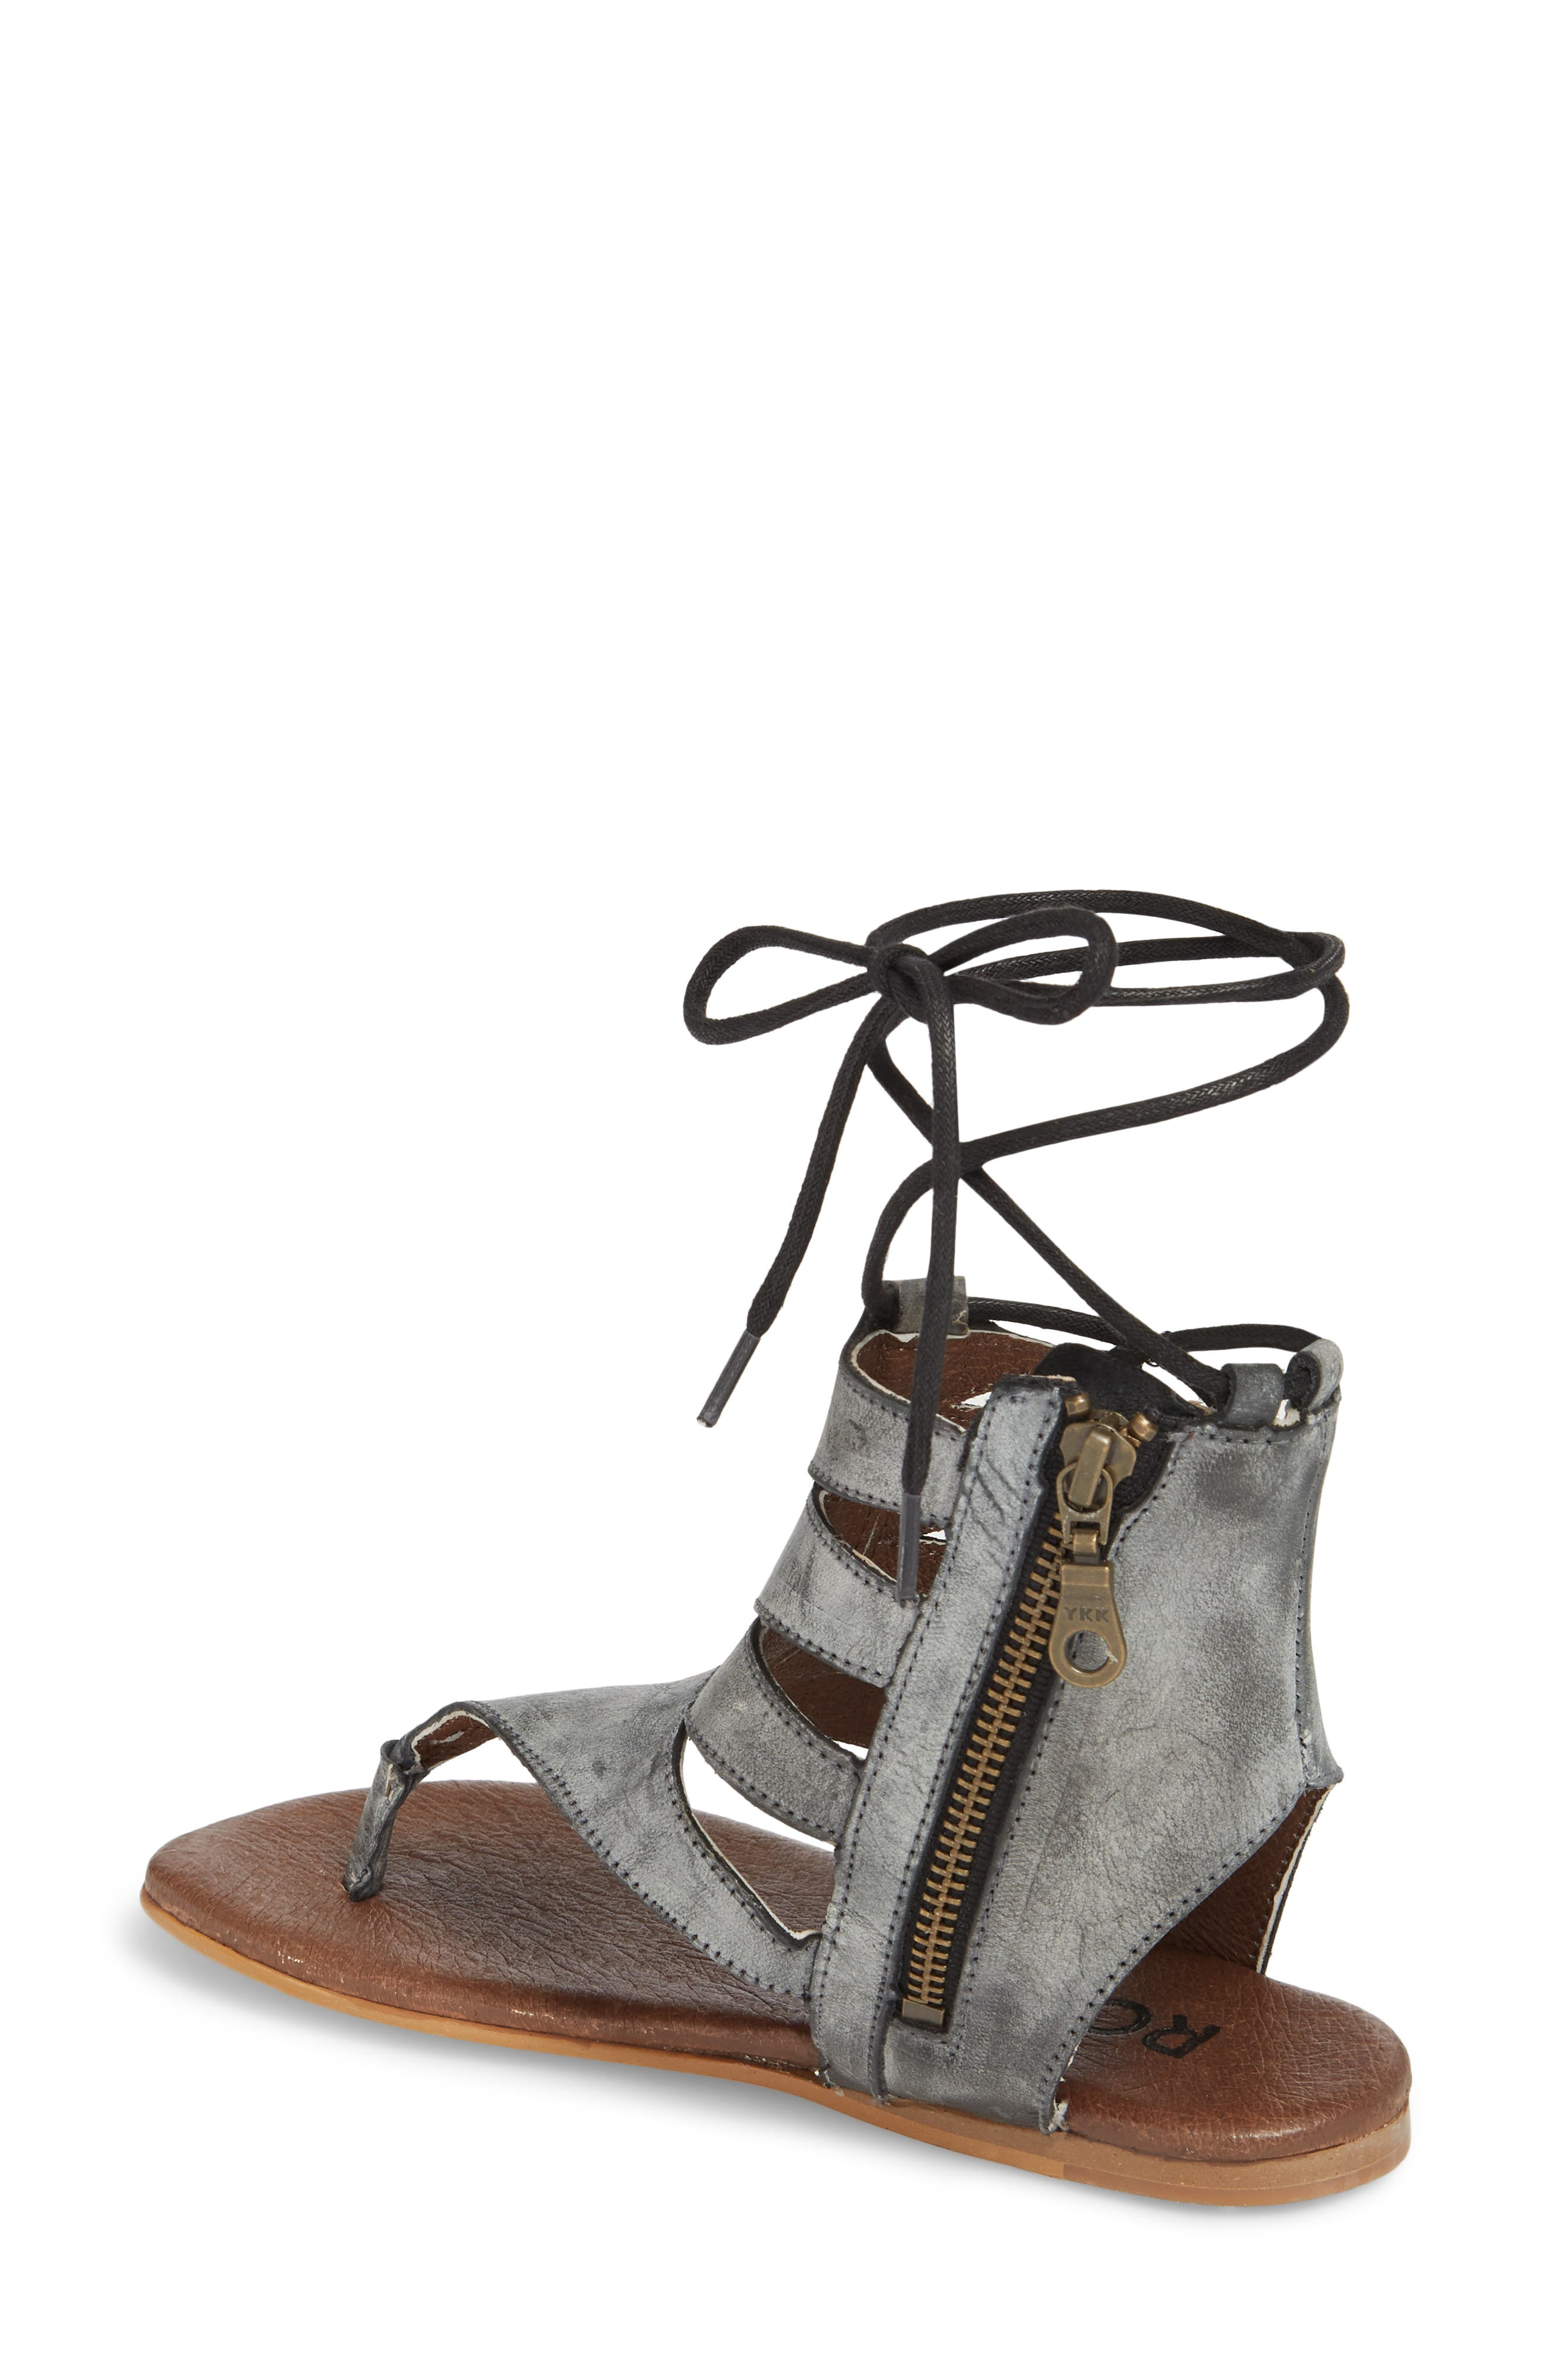 Rosalinda Tall Sandal,                             Alternate thumbnail 2, color,                             001